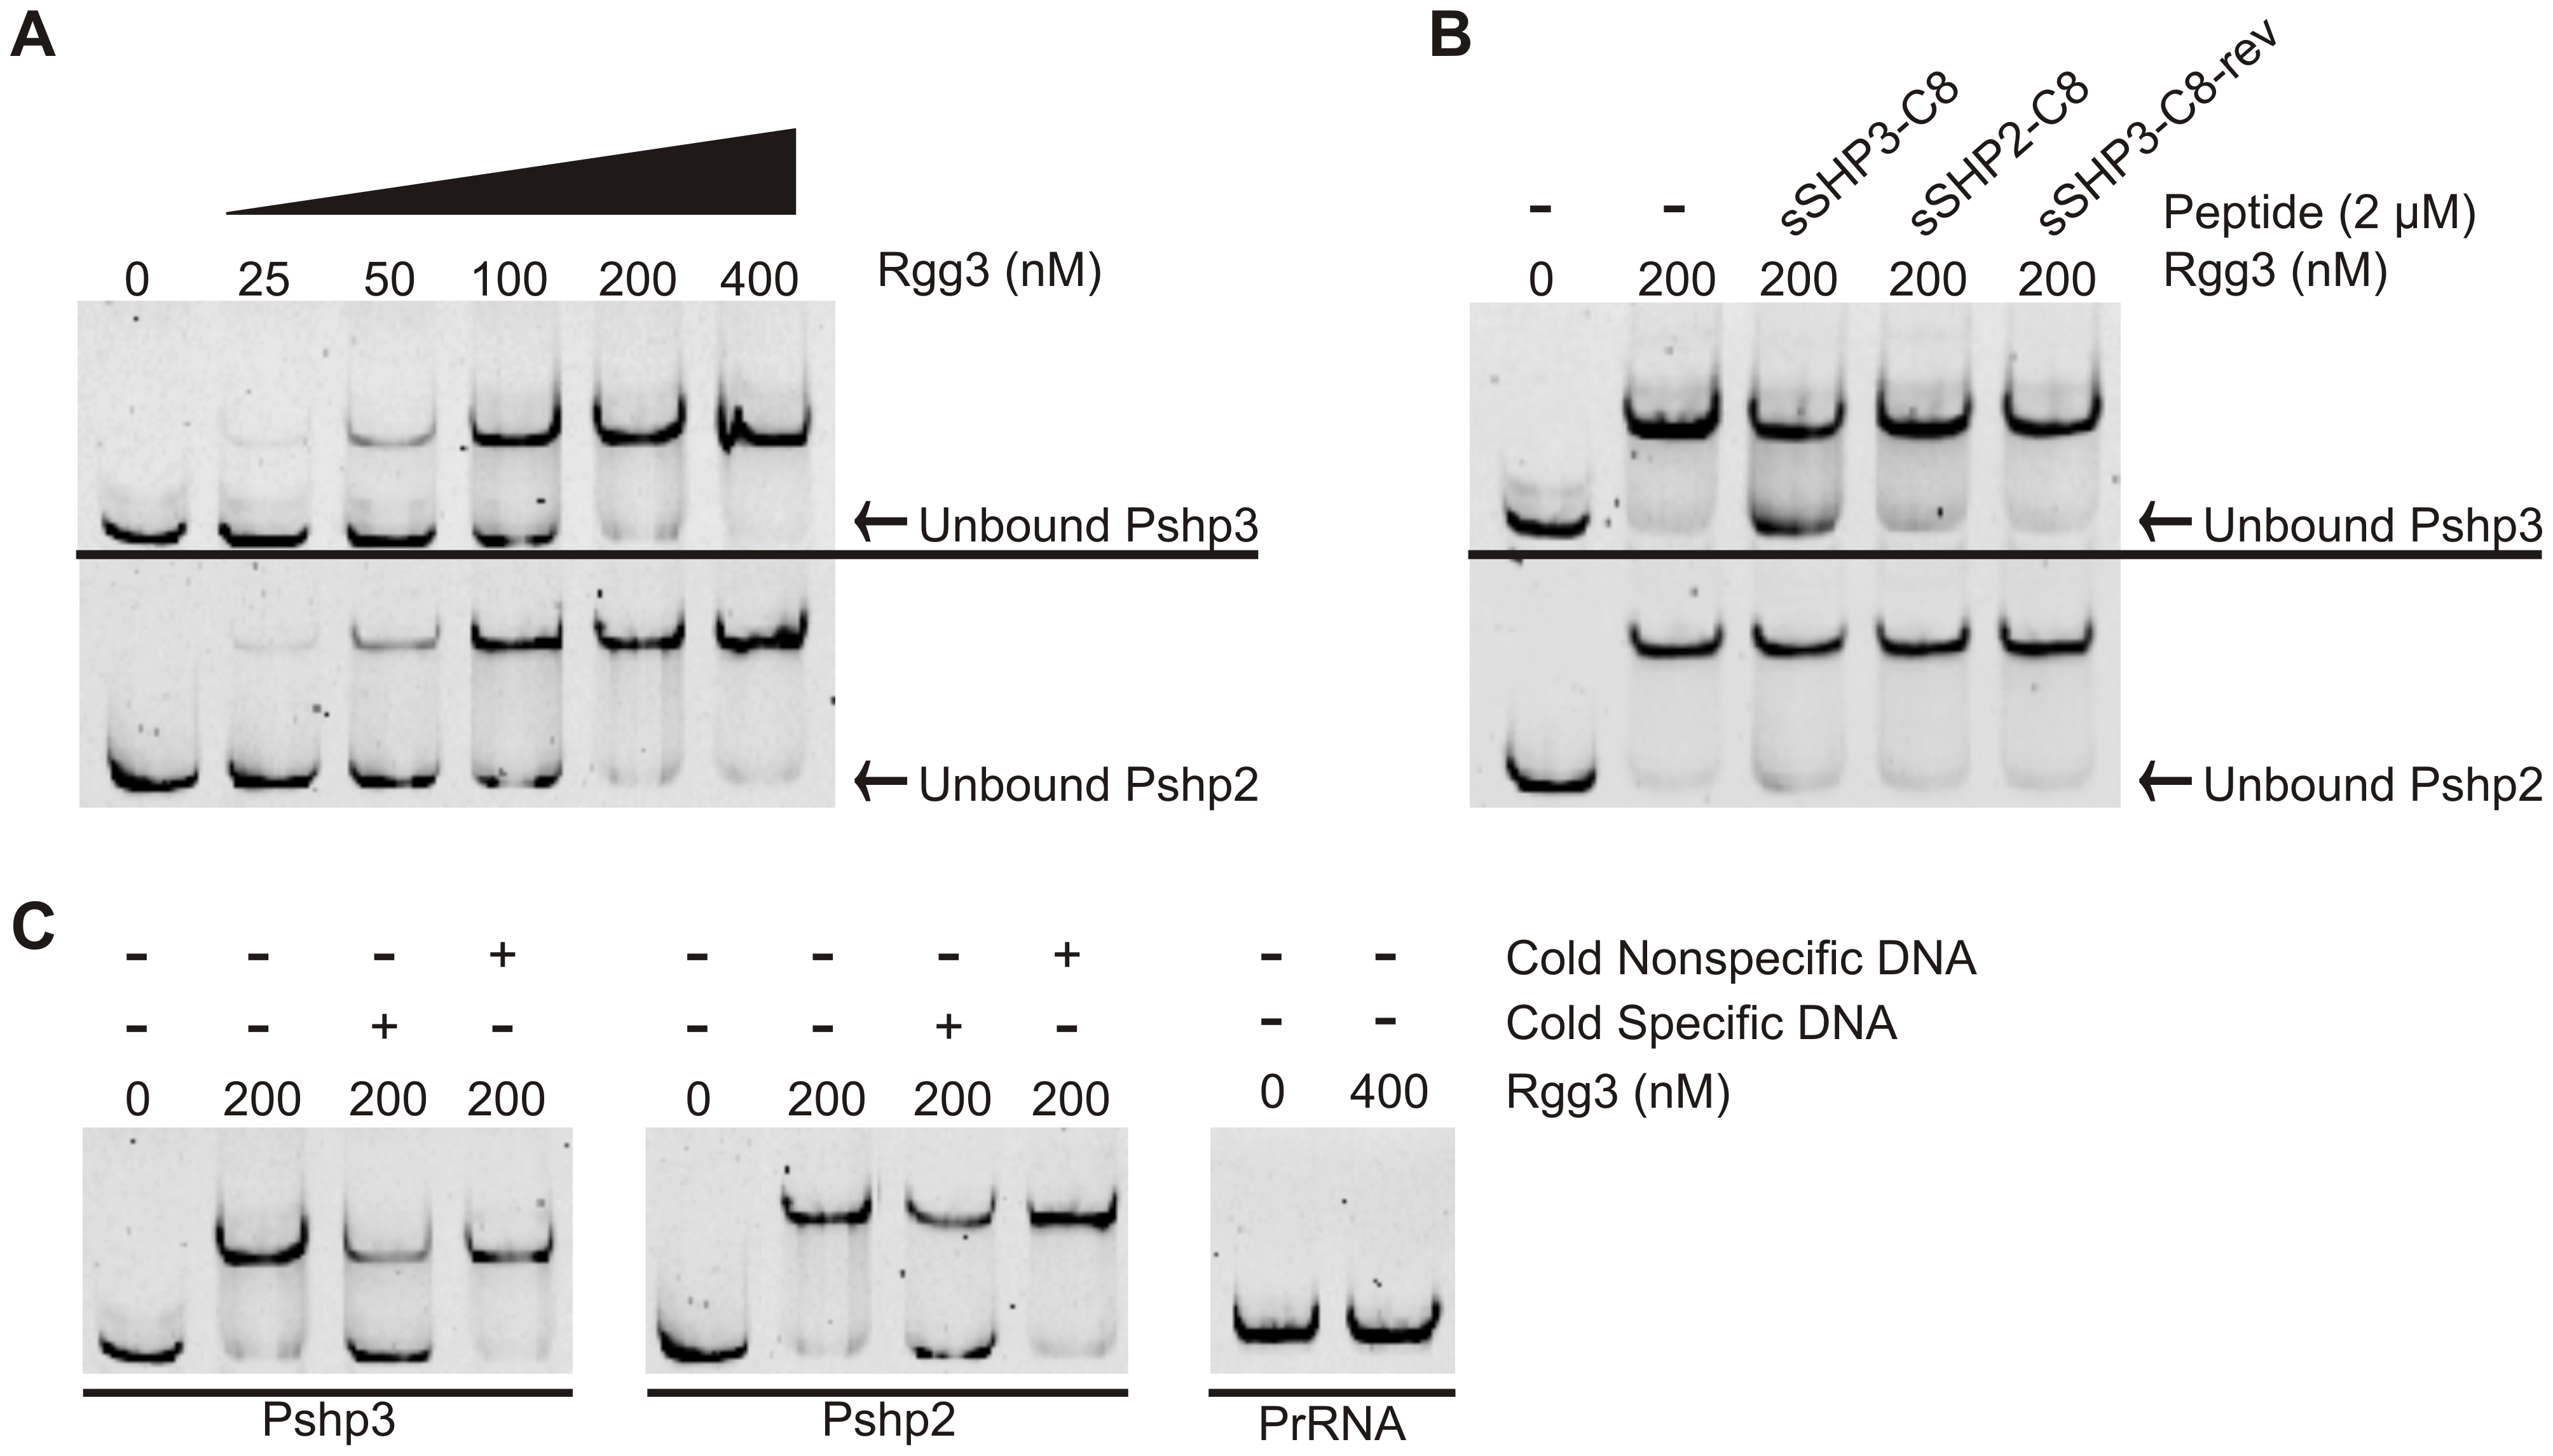 Rgg3 binds to <i>shp3</i> and <i>shp2</i> promoter regions but can be disrupted by cognate SHPs.